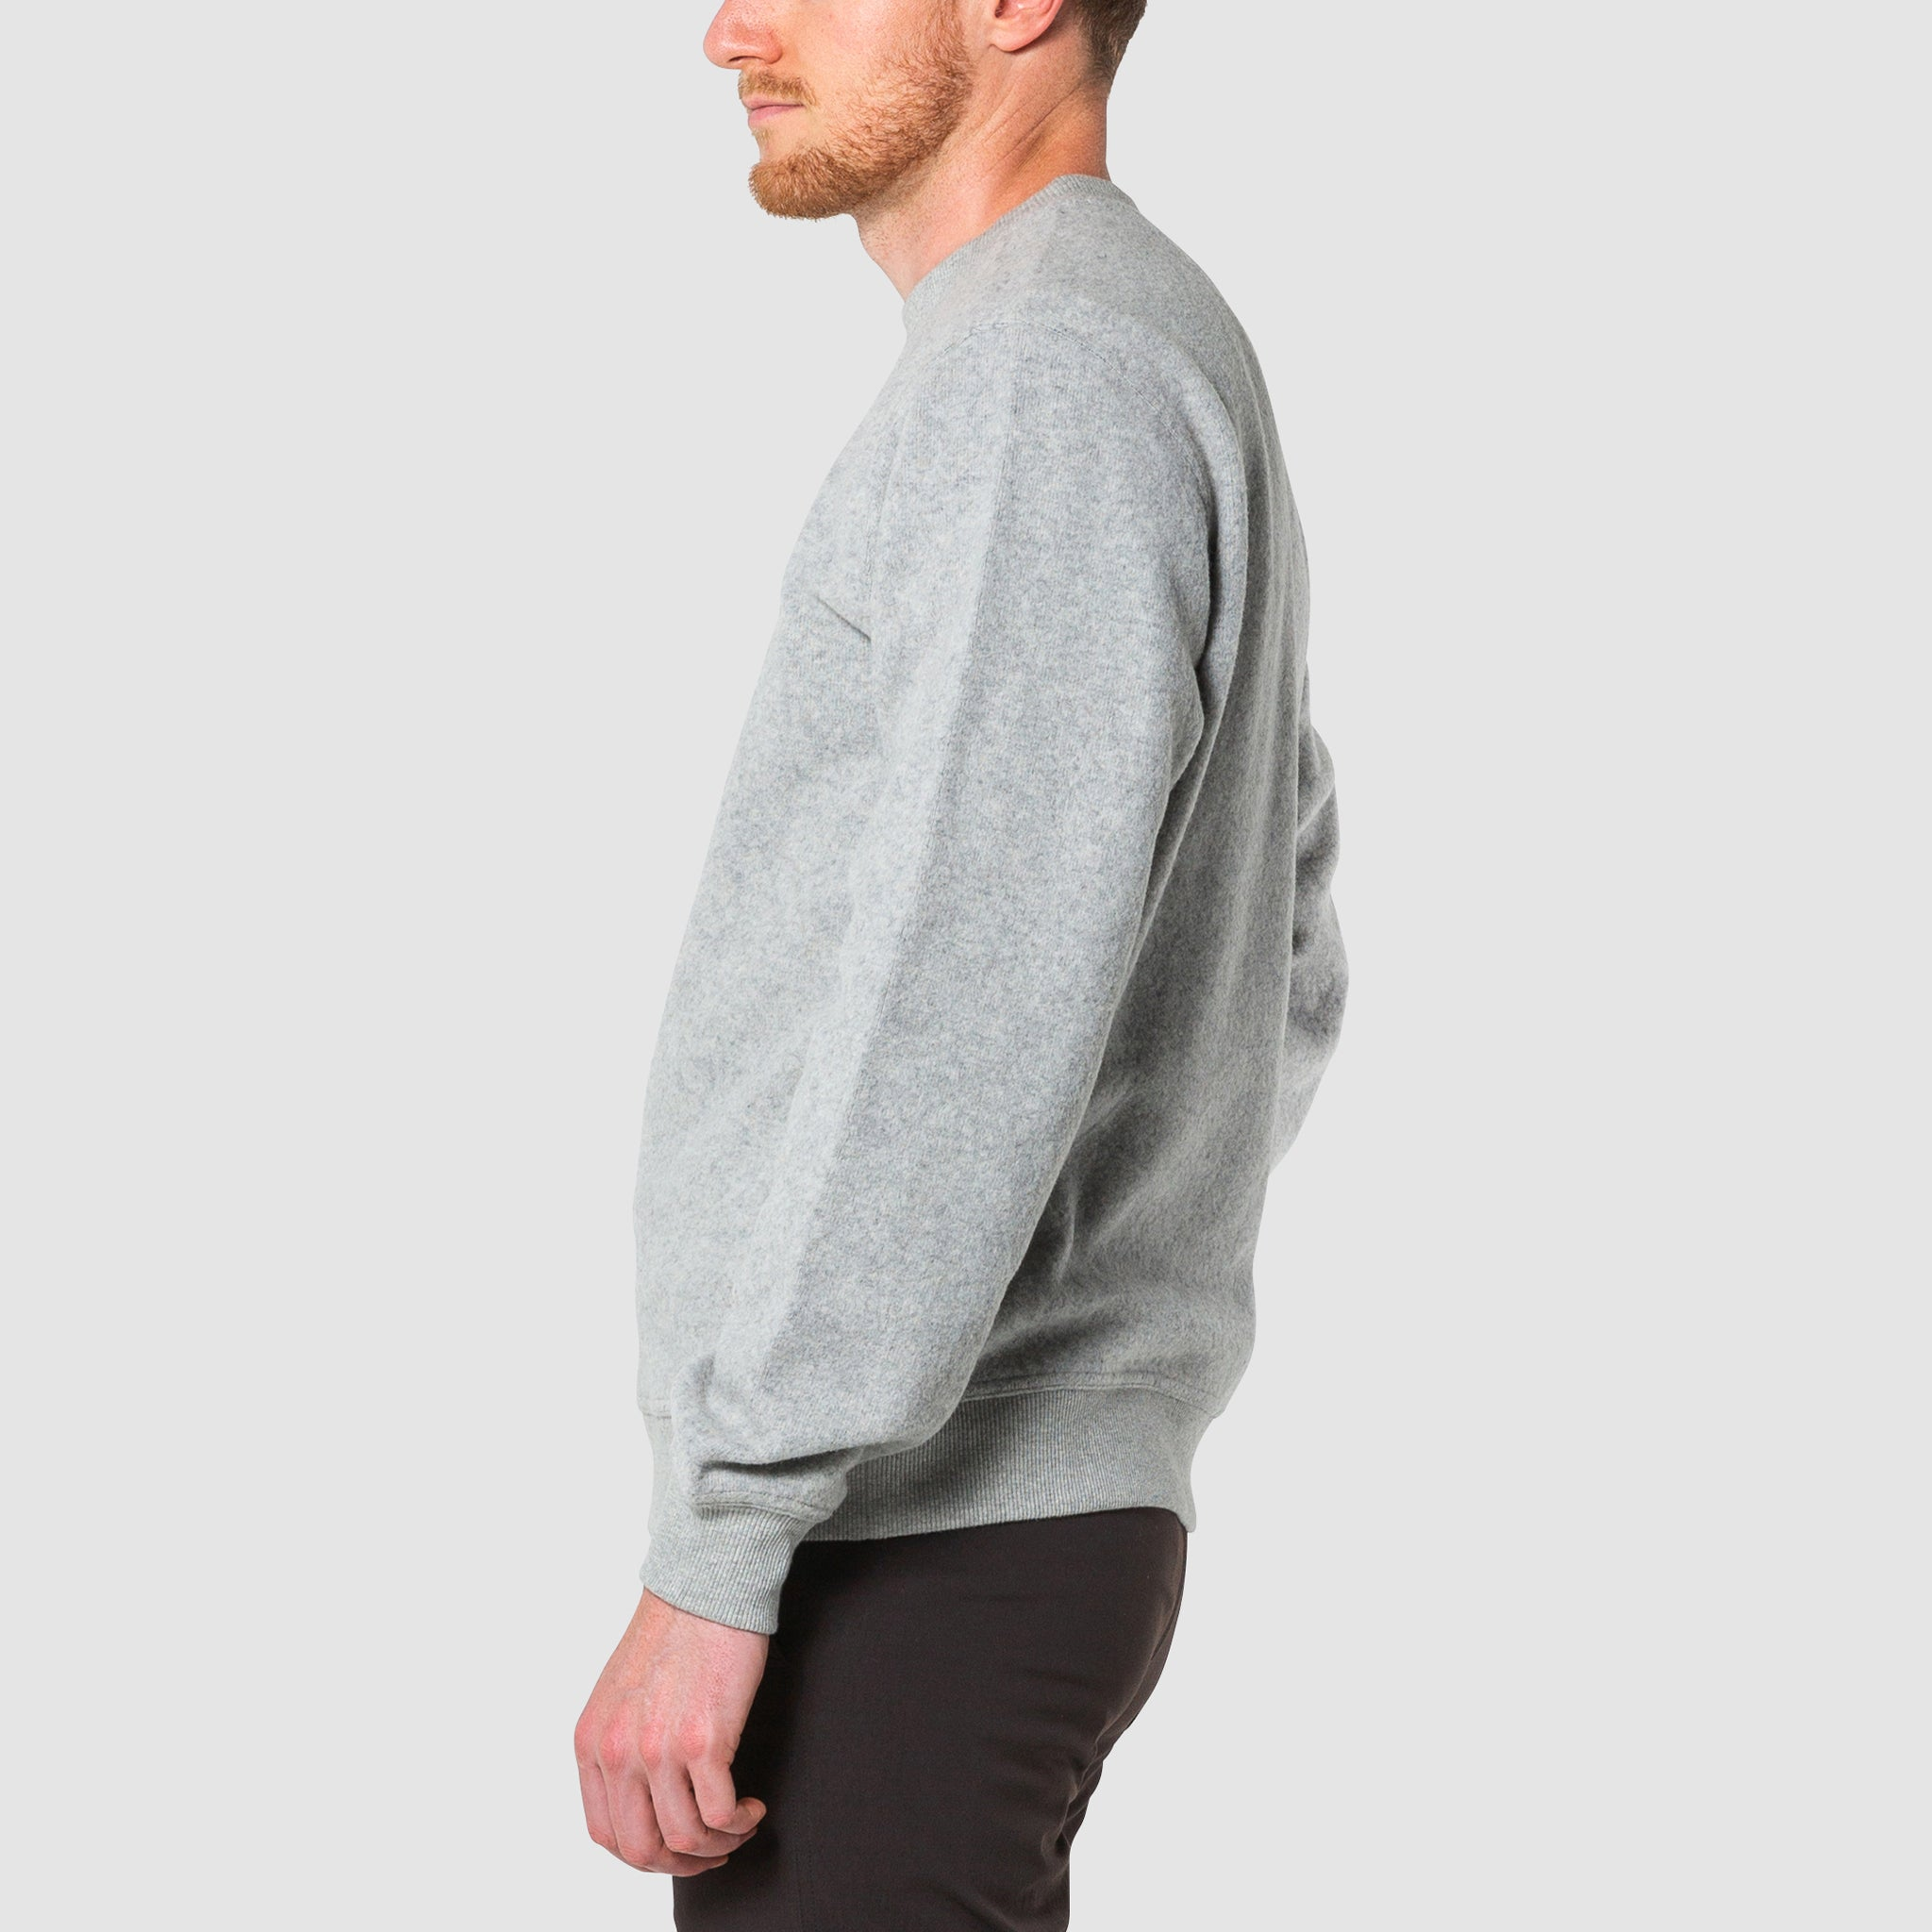 Mens Crew Neck Wool Pull Over Travel Sweater Topo Designs